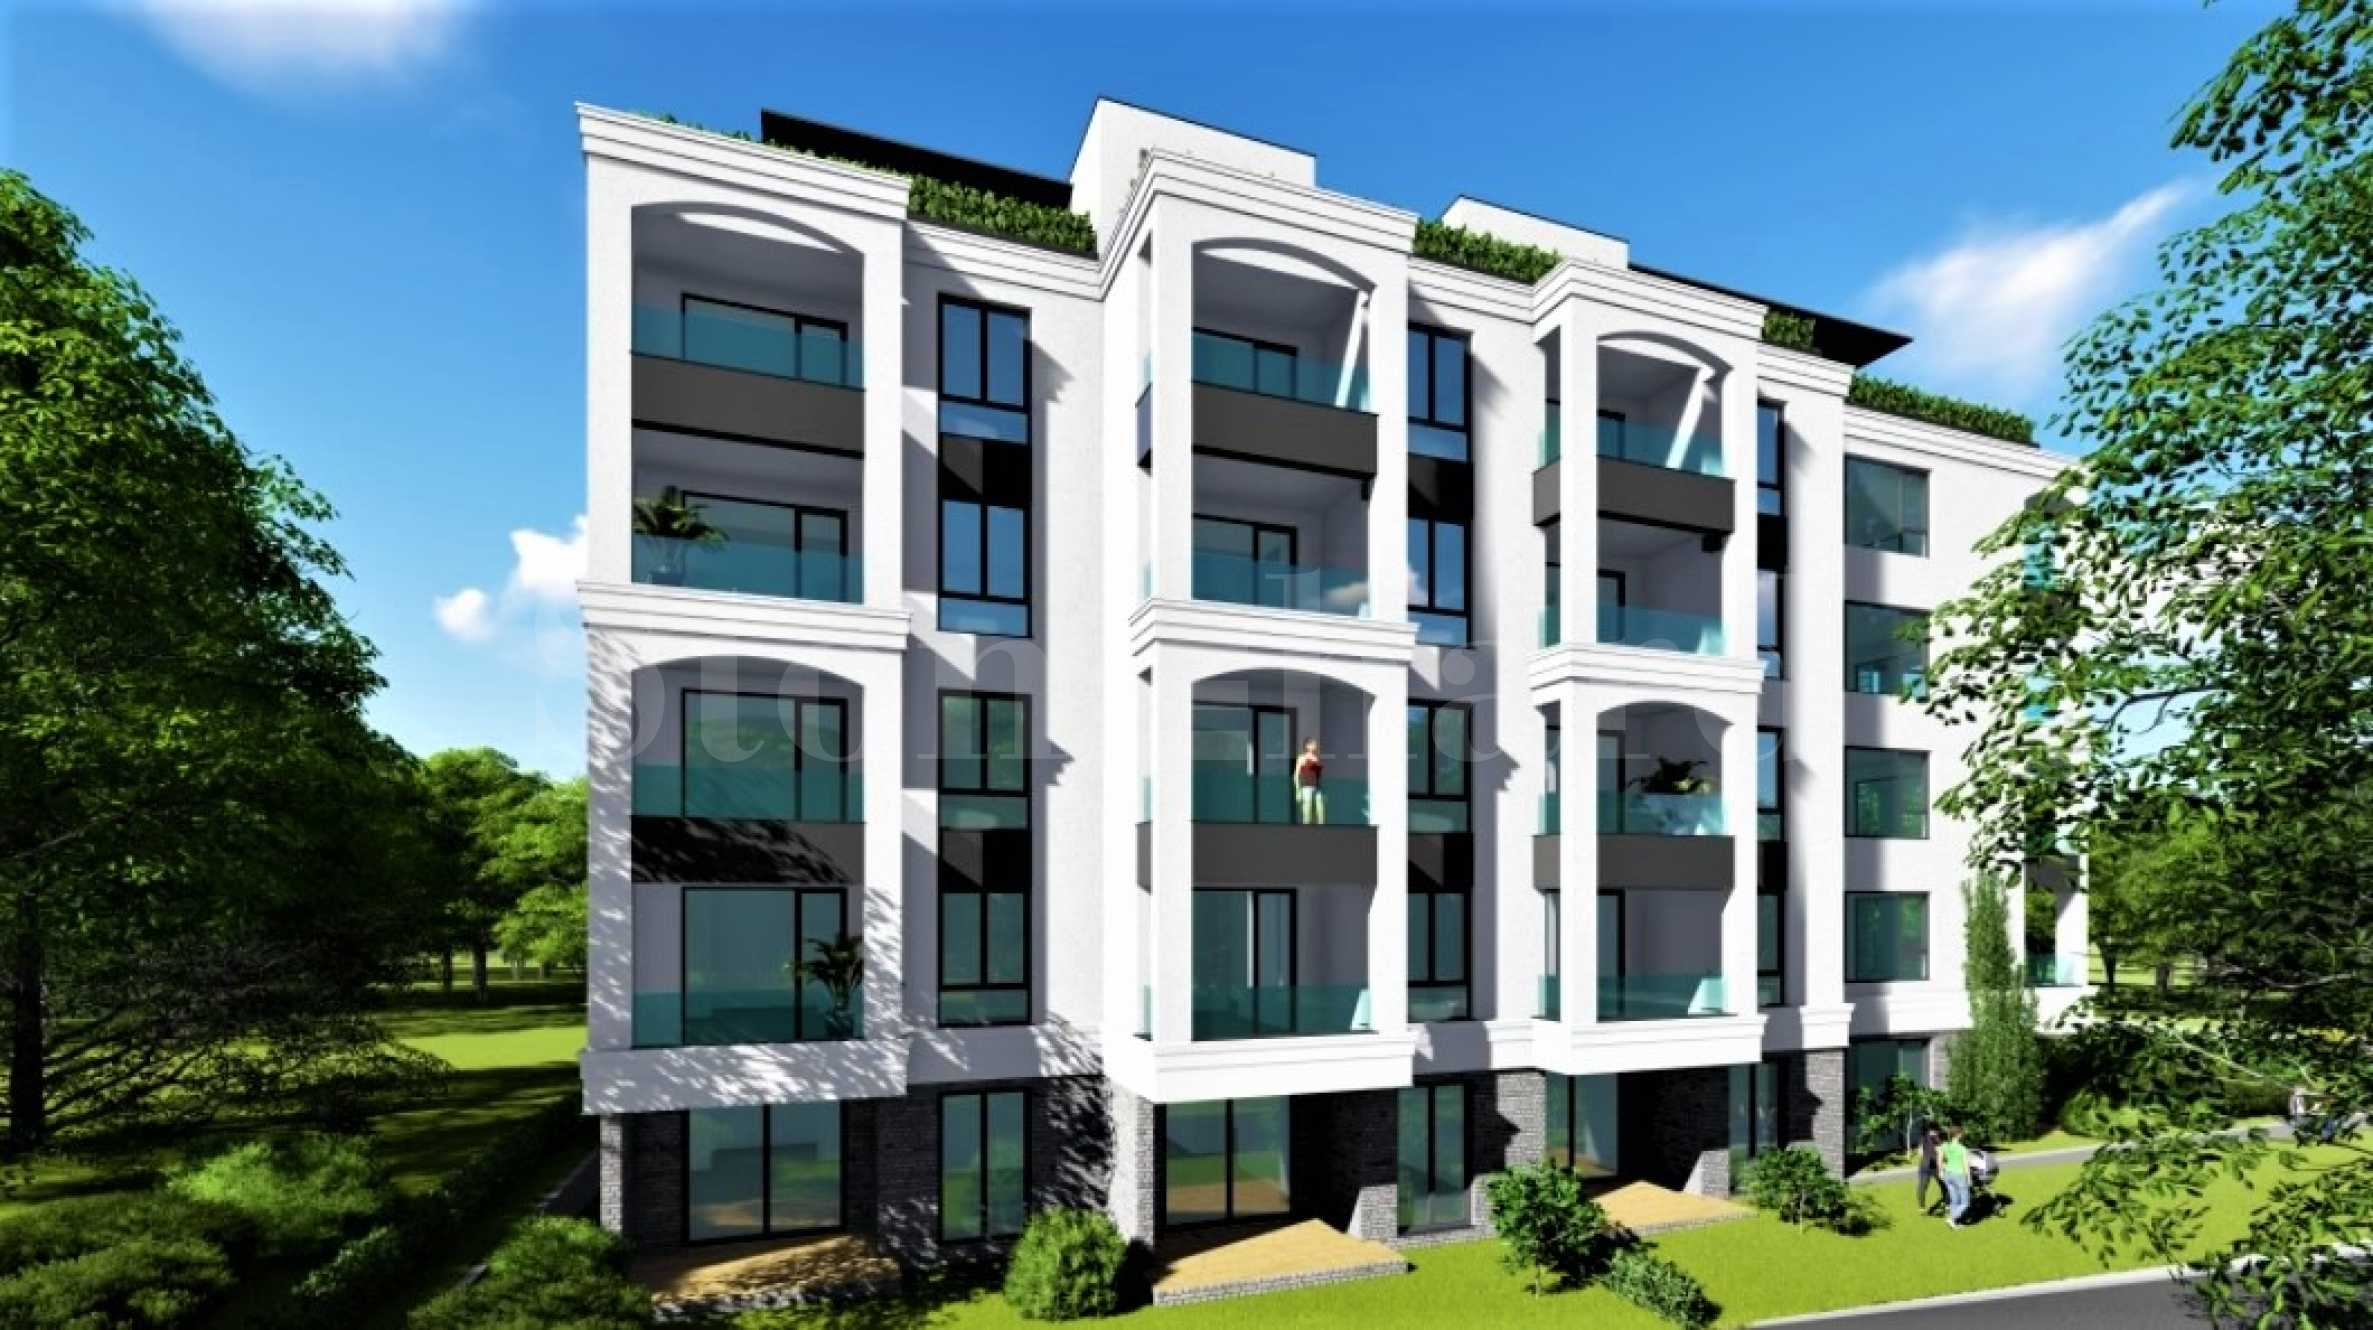 New apartments in an elegant building in a famous seaside resort1 - Stonehard